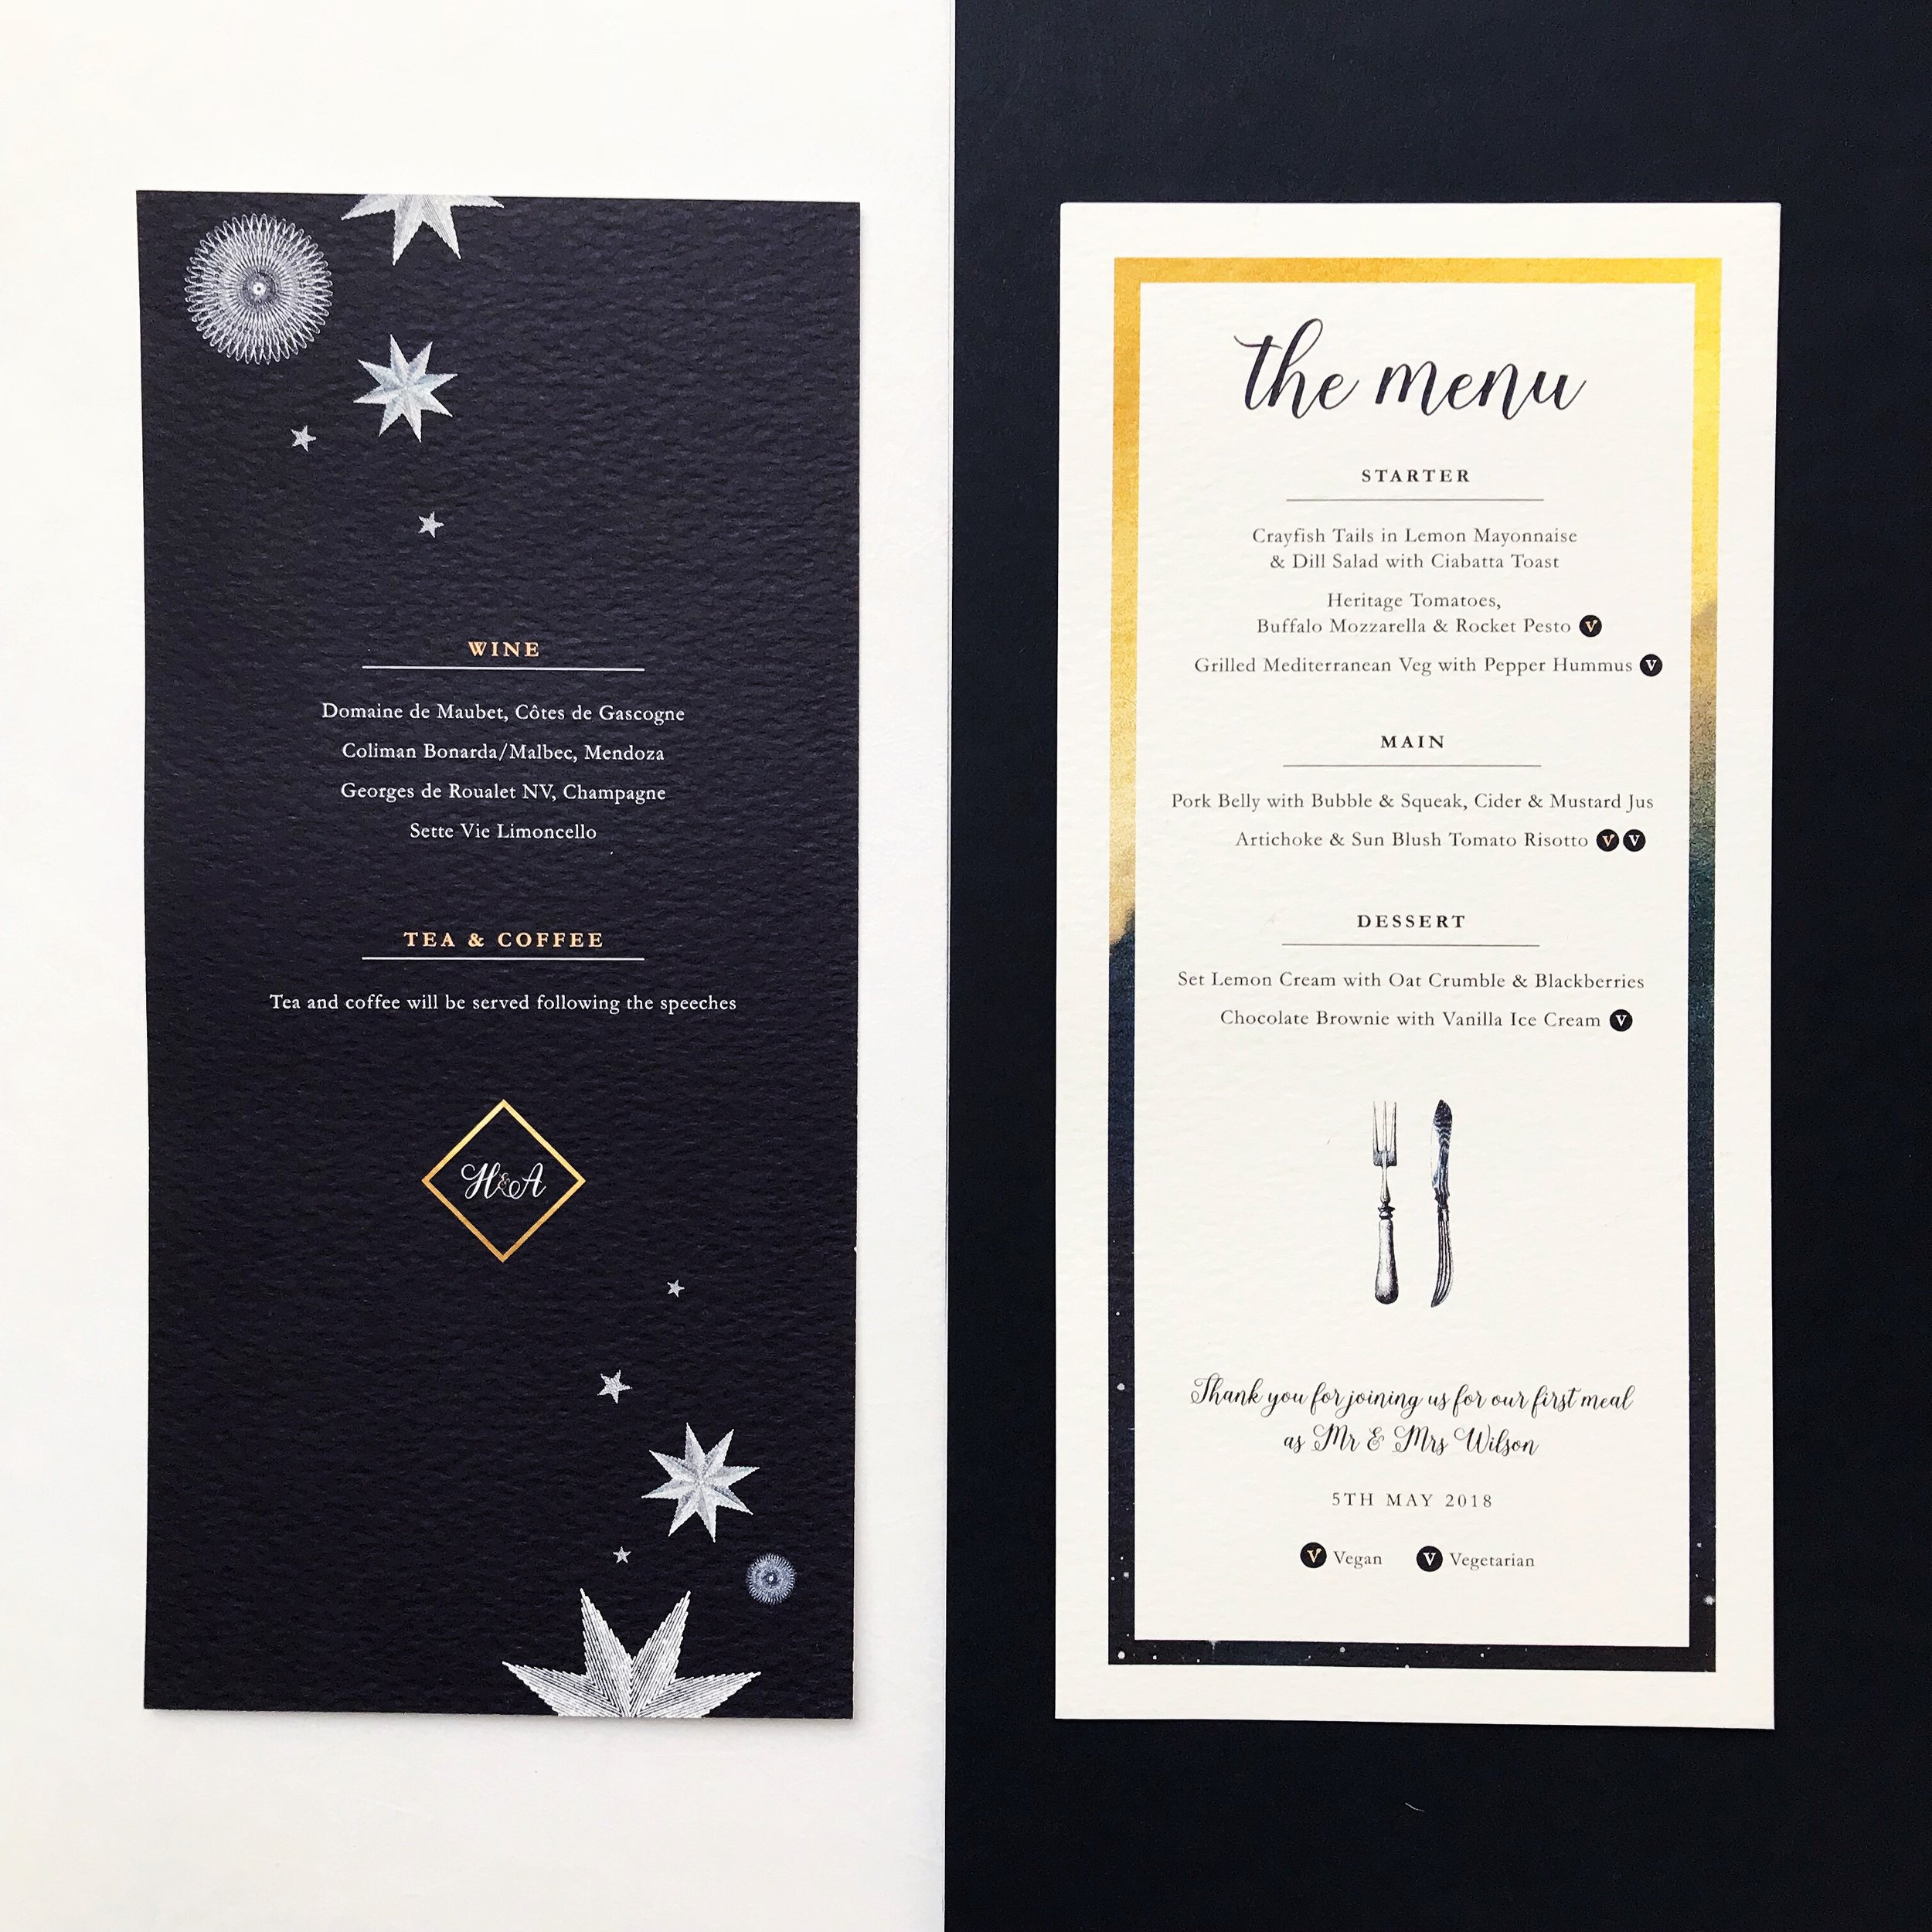 theinkcloset-wedding-invite-midnight-stars-matara-inspo-blog-7.jpg